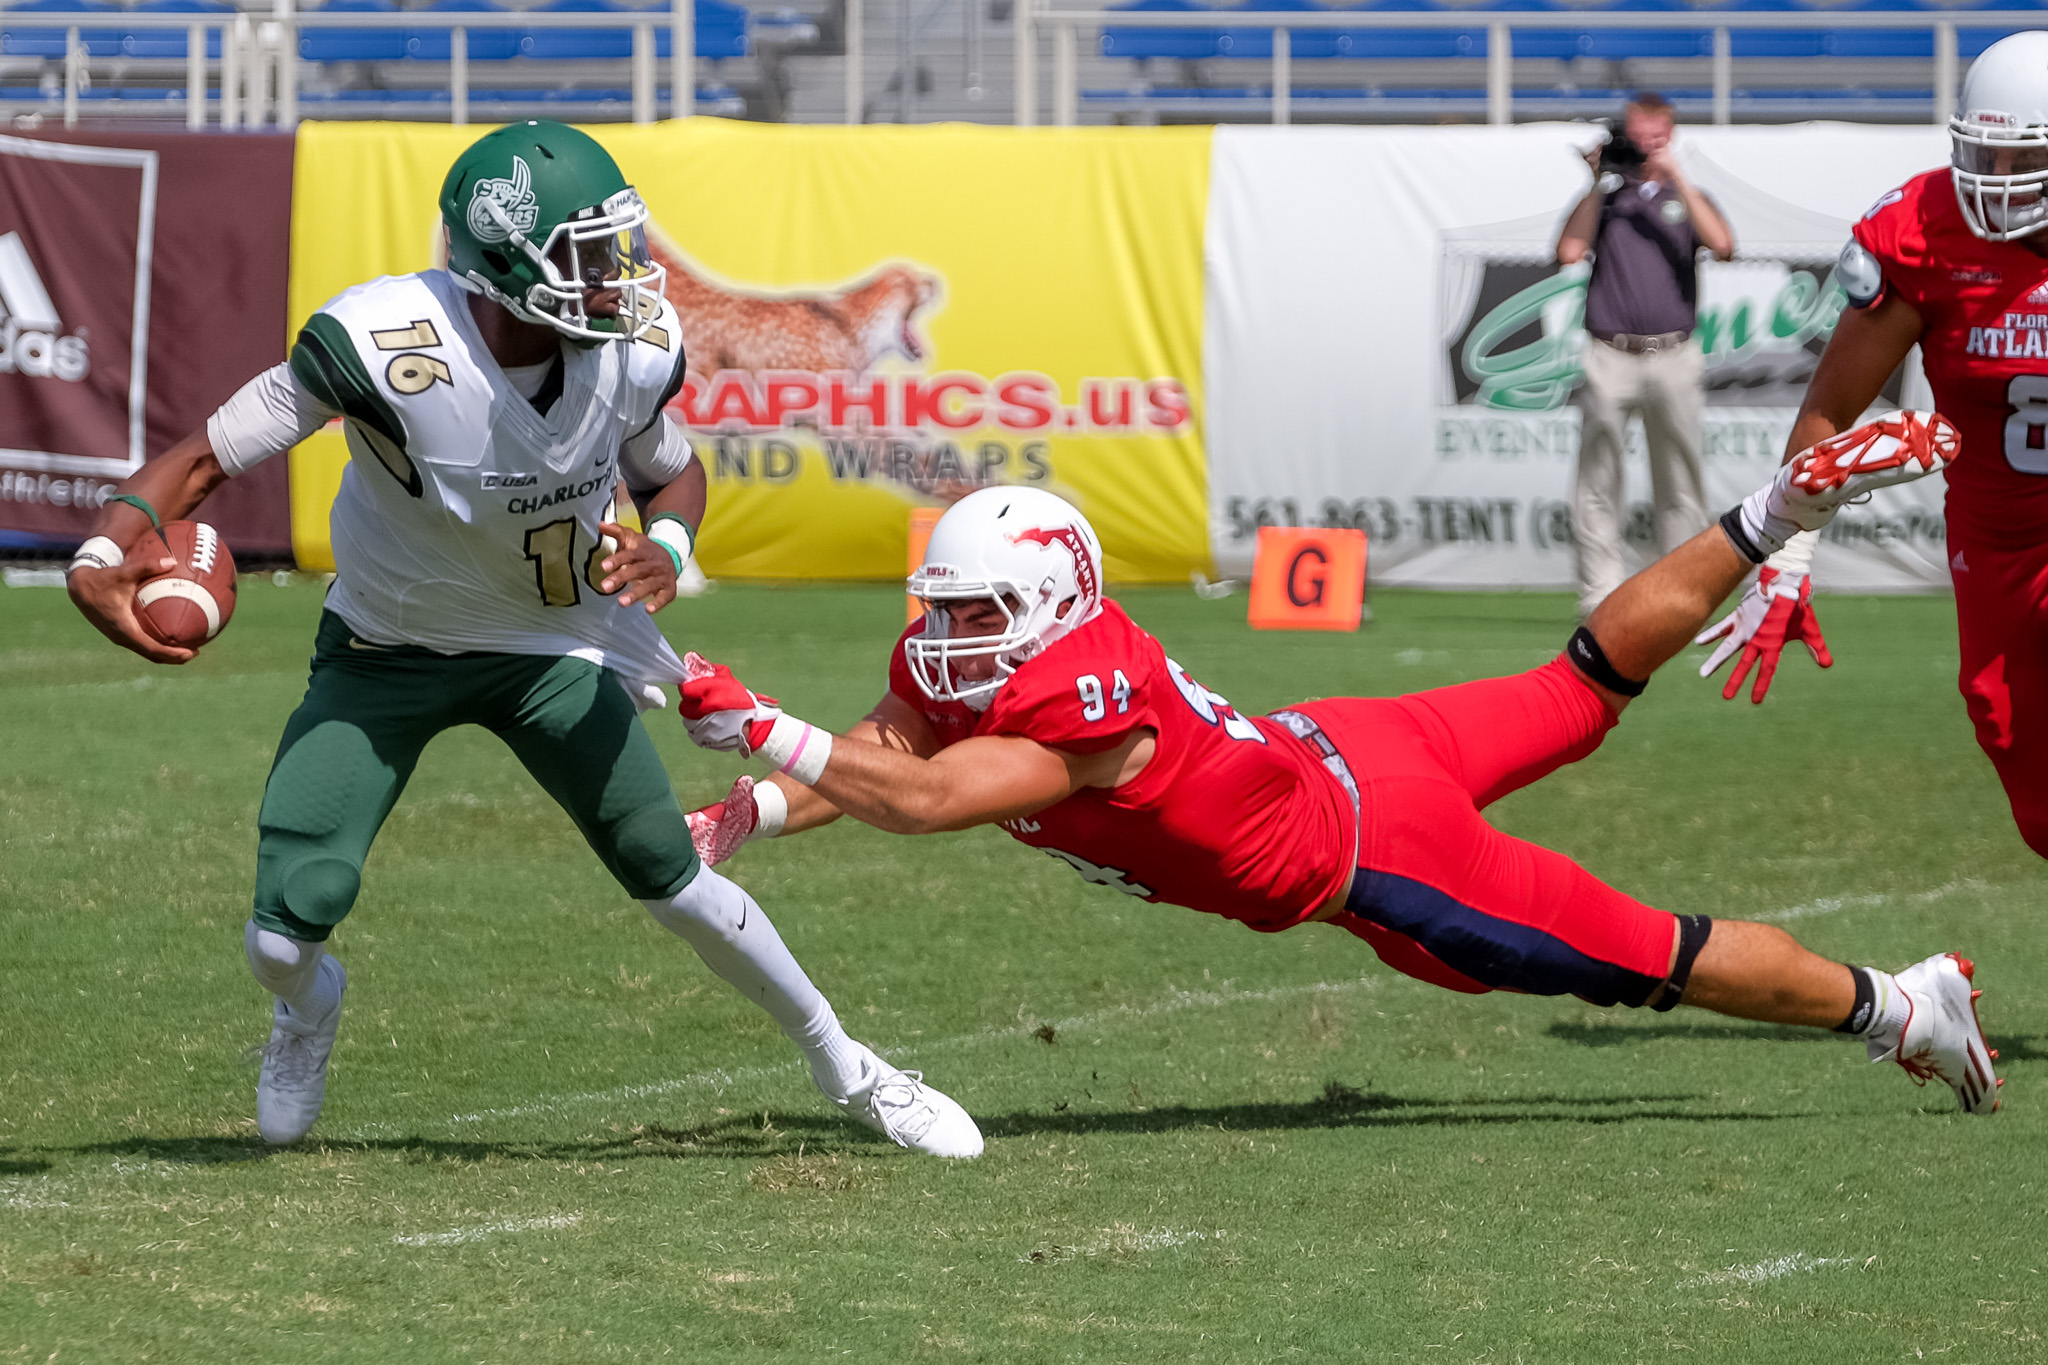 FAU defensive lineman Hunter Snider (94) sacks 49ers quarterback Hasaan Klugh (16).